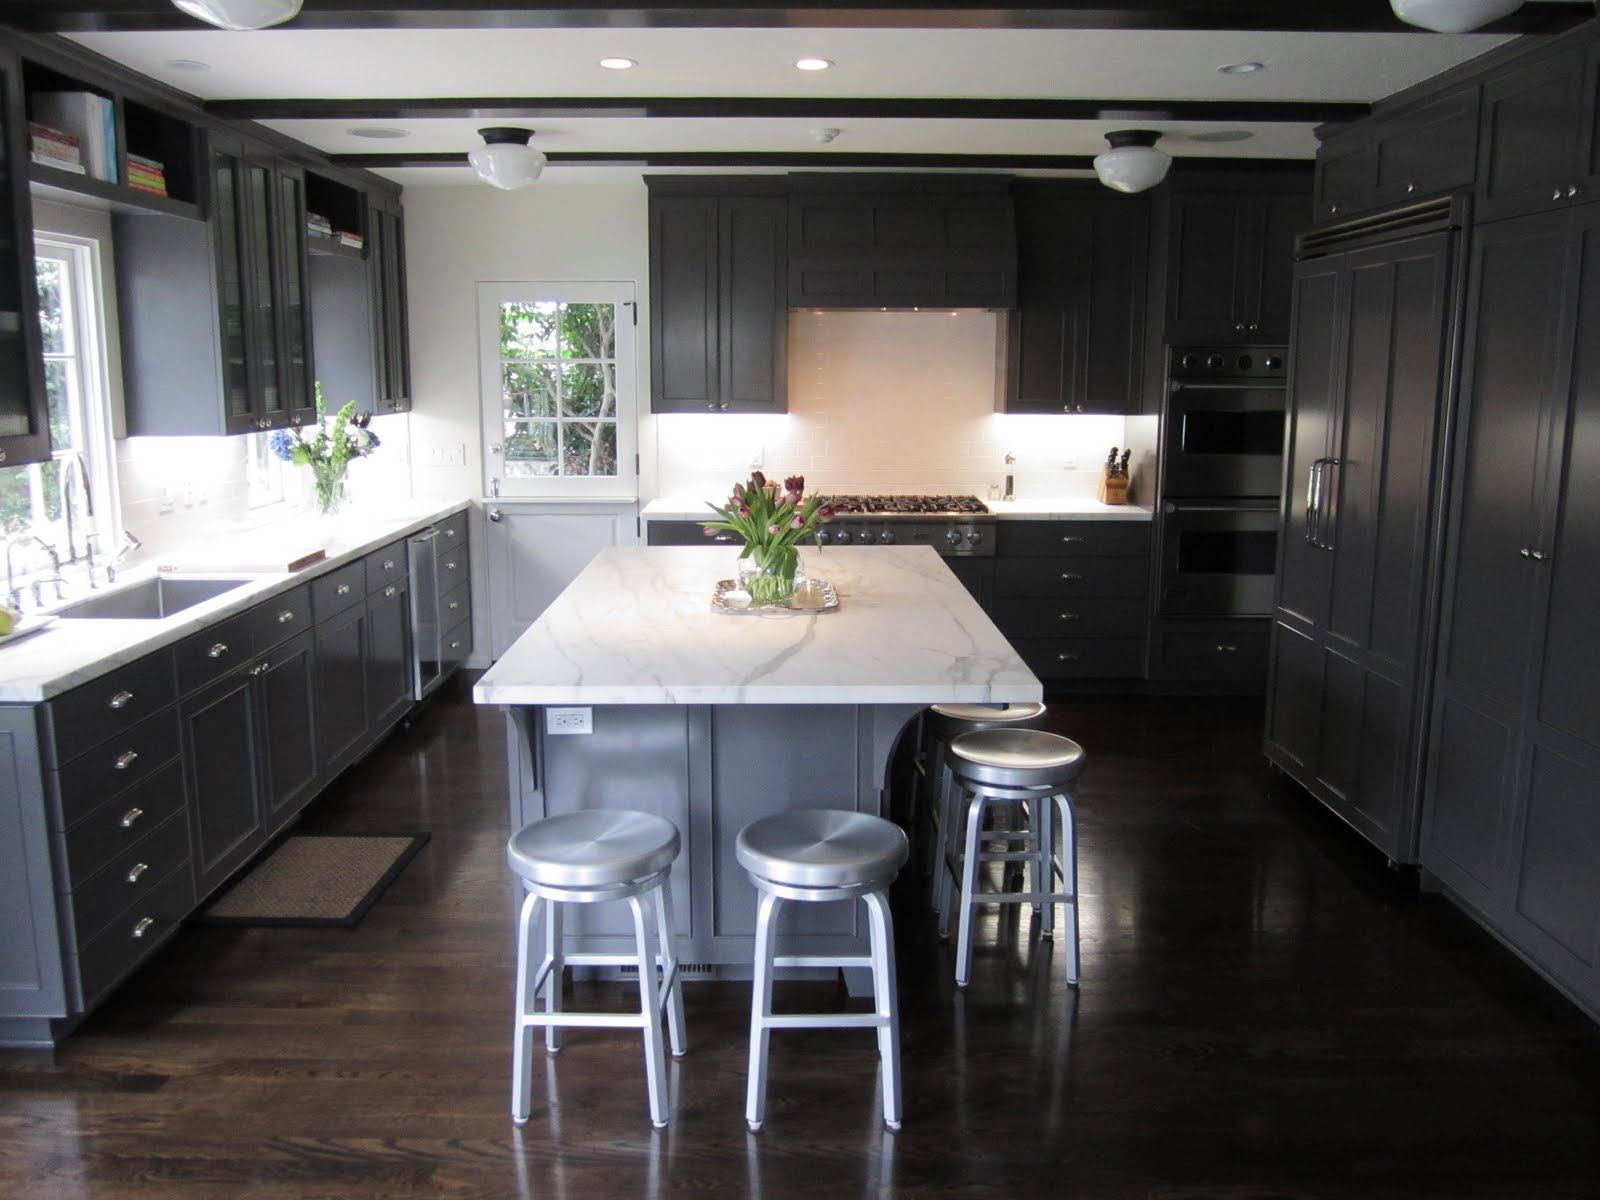 Exclusive Kitchen Couture An Elegant California Classic Gray Cabin Remodeling Dark Cabinets Cabi Grey Kitchen Floor Dark Kitchen Cabinets Grey Kitchen Cabinets